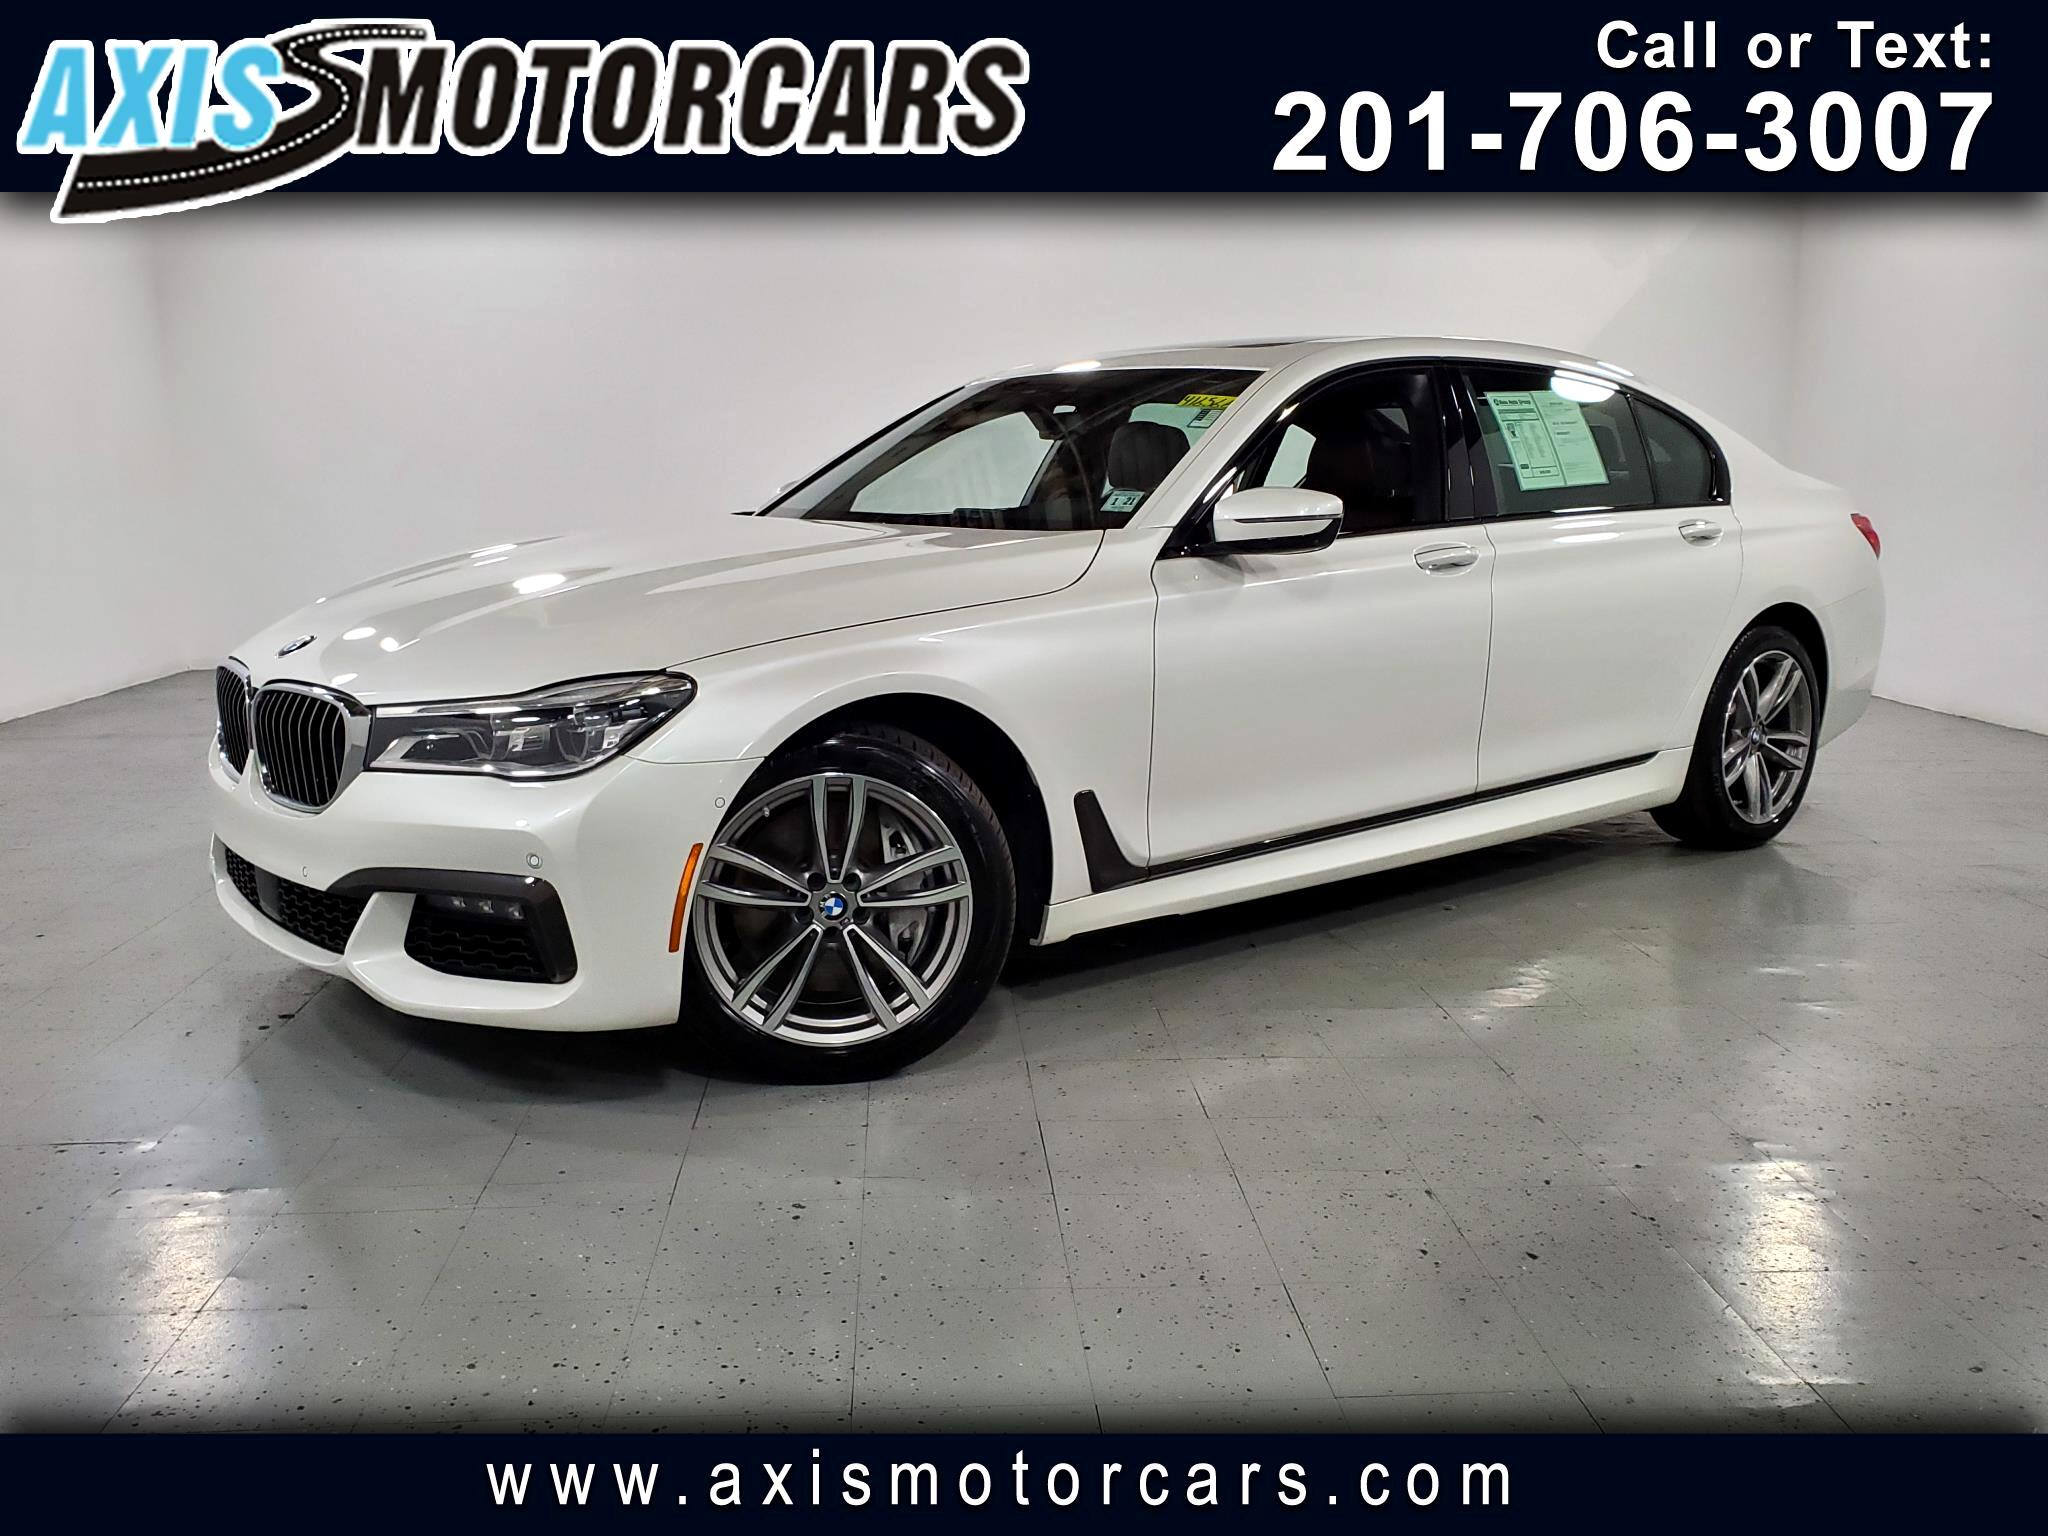 2016 BMW 750i M PKG w/Harman Kardon Sound System Panoramic Roof